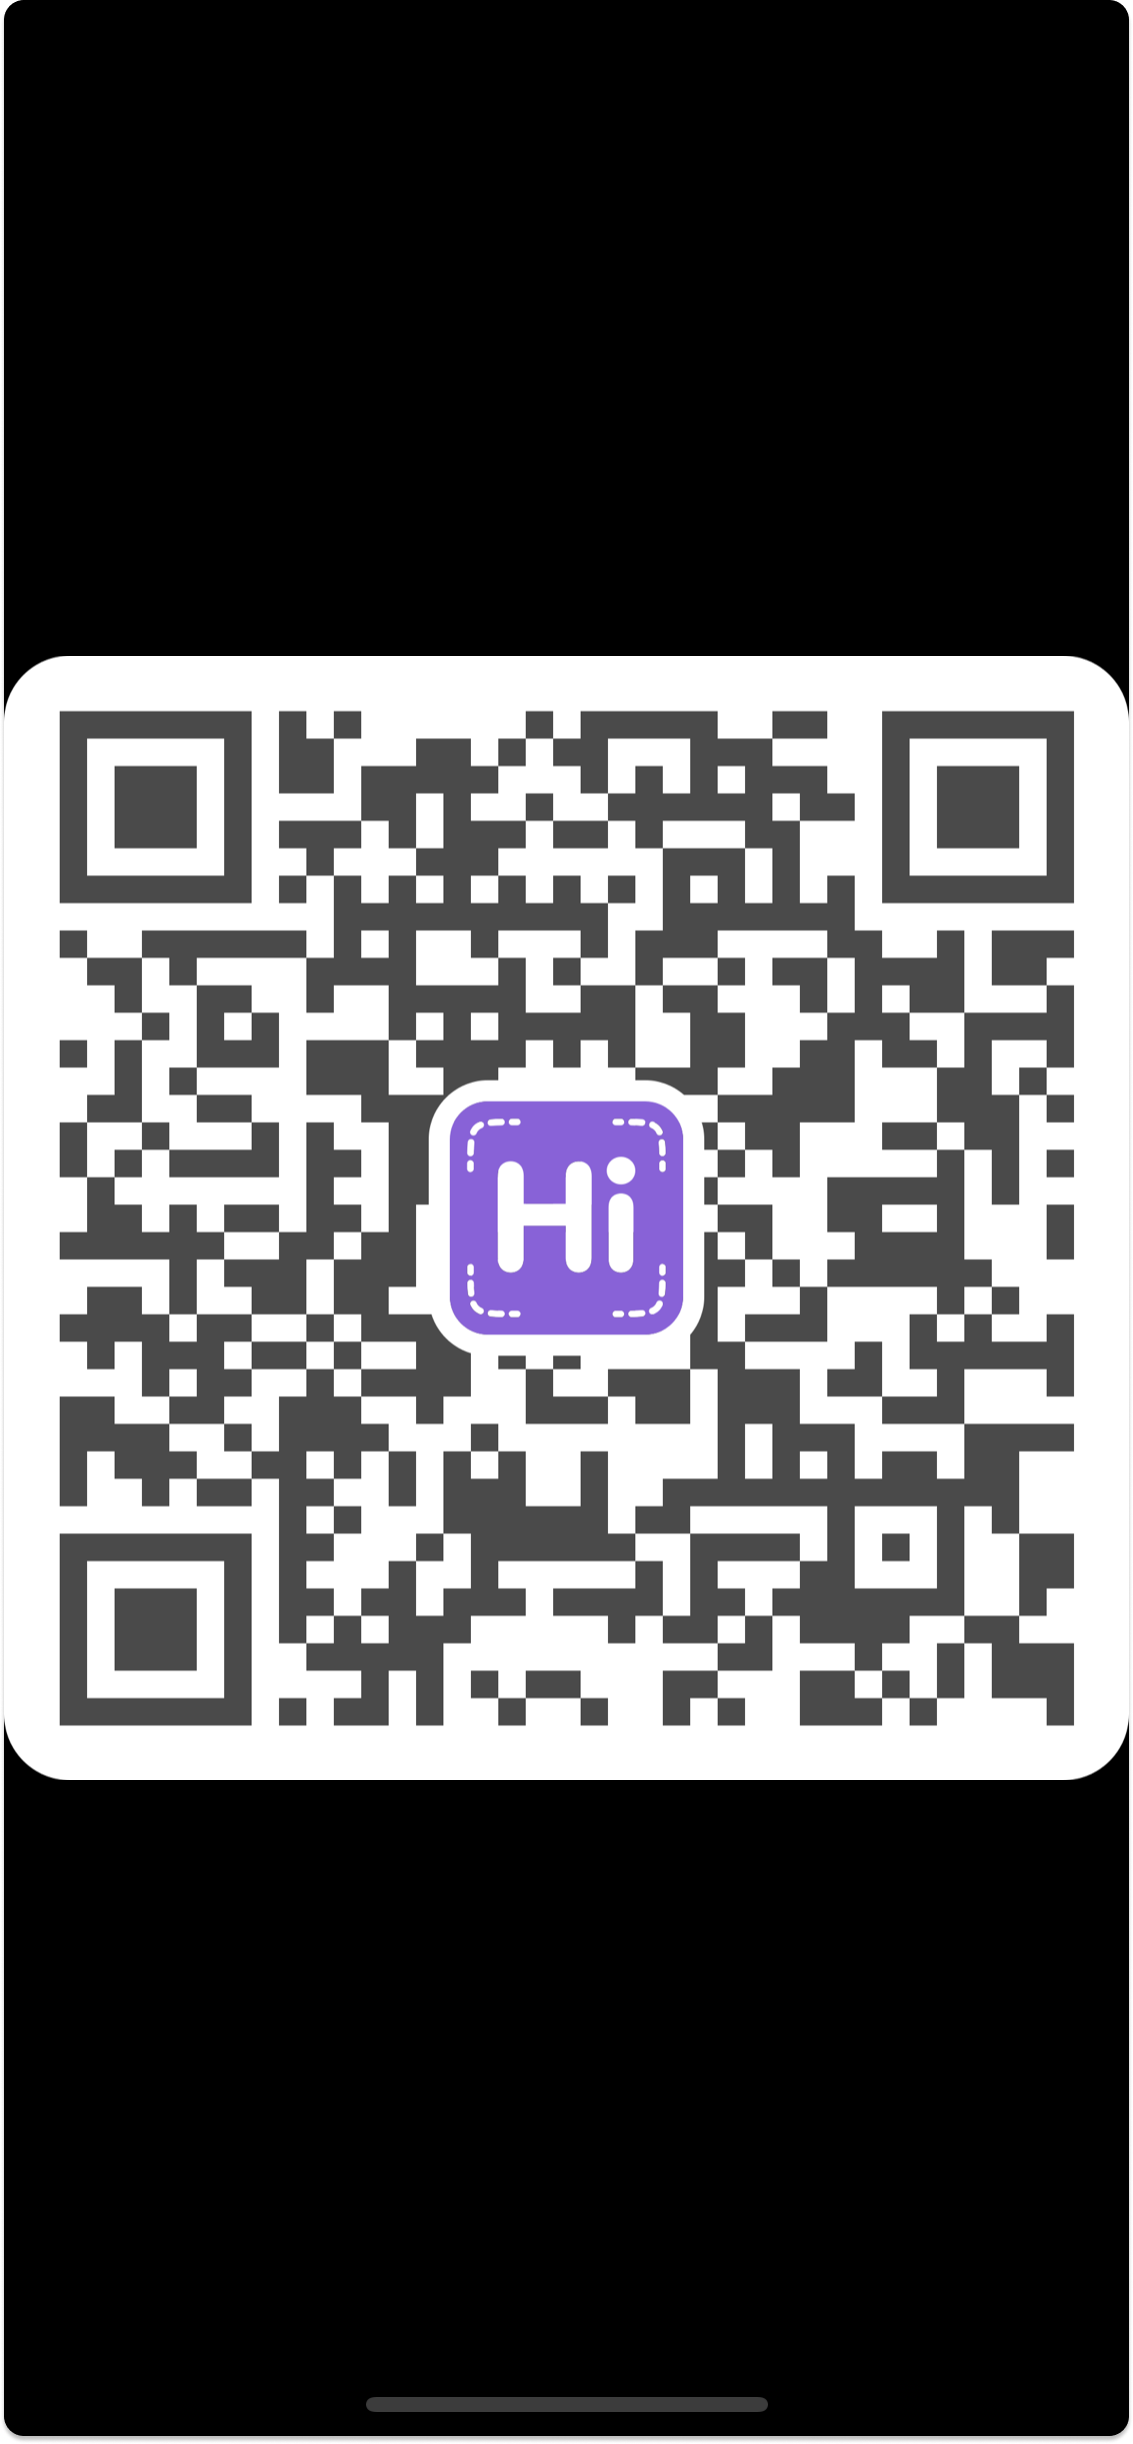 You'll then see your business card's QR code in your Photos app.